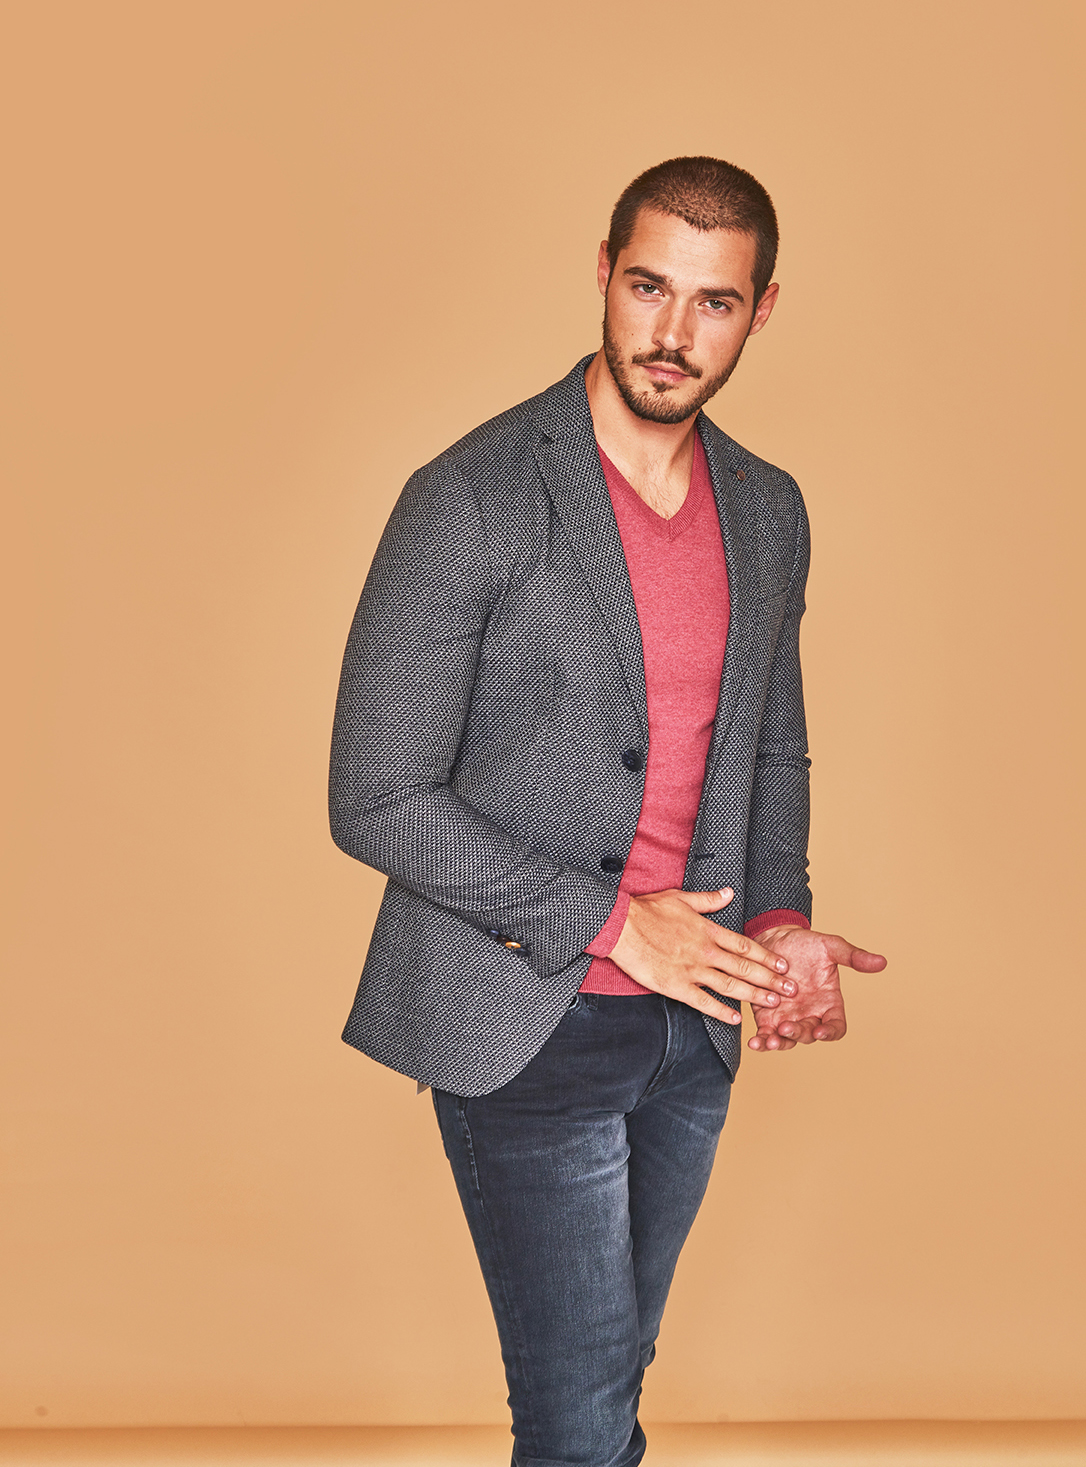 Jack & Jones suknjič  79,99 €  Tom Tailor srajca  29,99 € Tom Tailor pulover 39,99 € Jack & Jones jeans 29,99 €